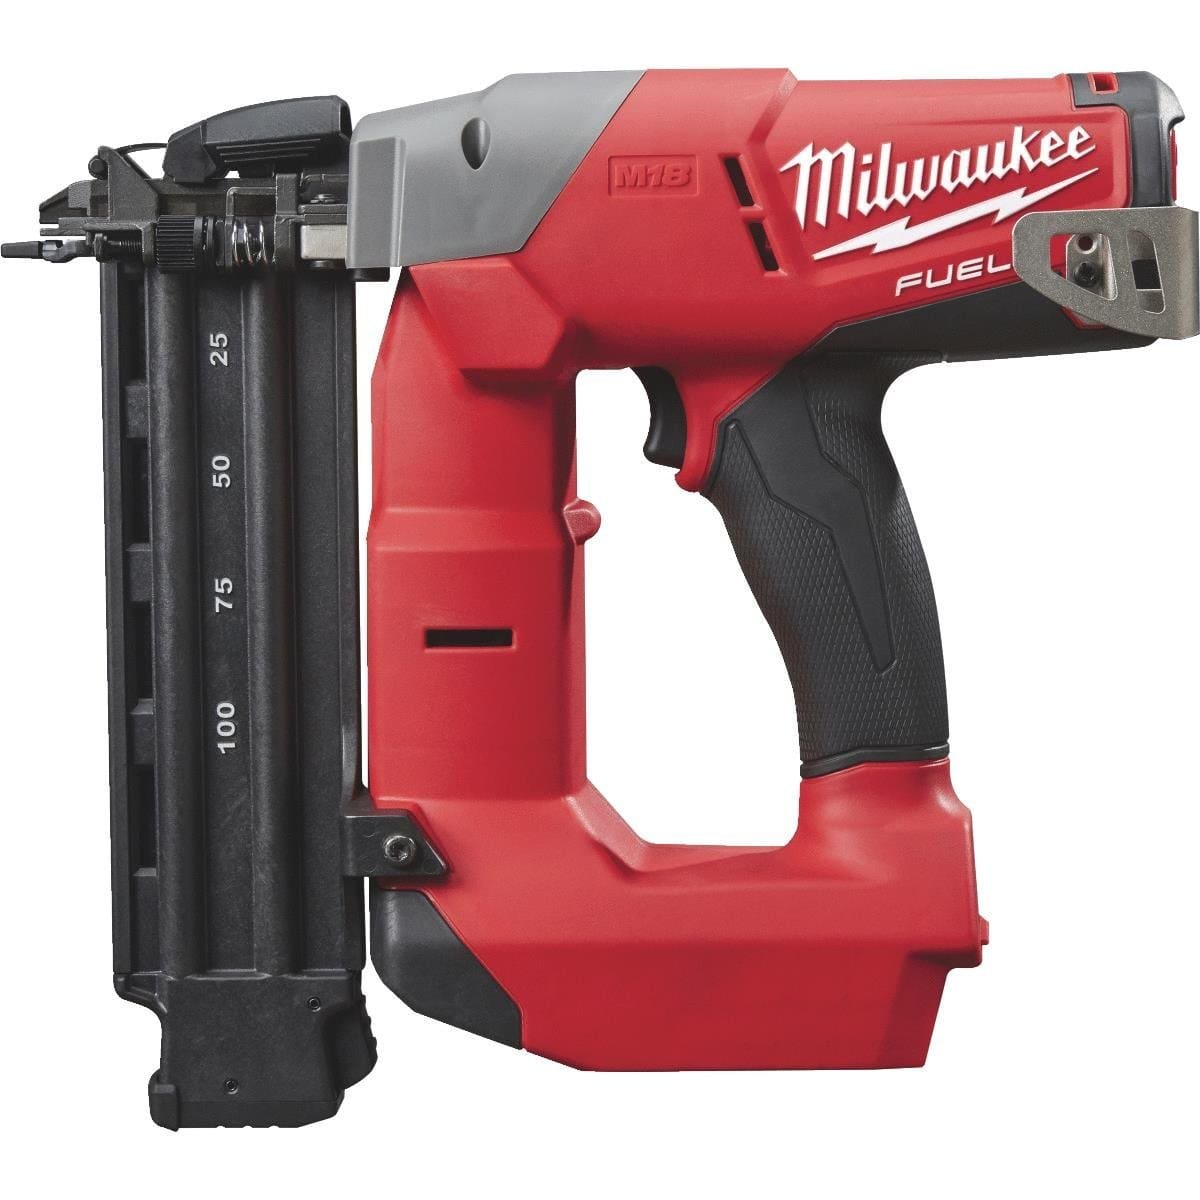 M18 FUEL 18-Volt Lithium-Ion Brushless Cordless 18-Gauge Brad Nailer (Tool Only) - Home Depot - $179 (Orig. $249)